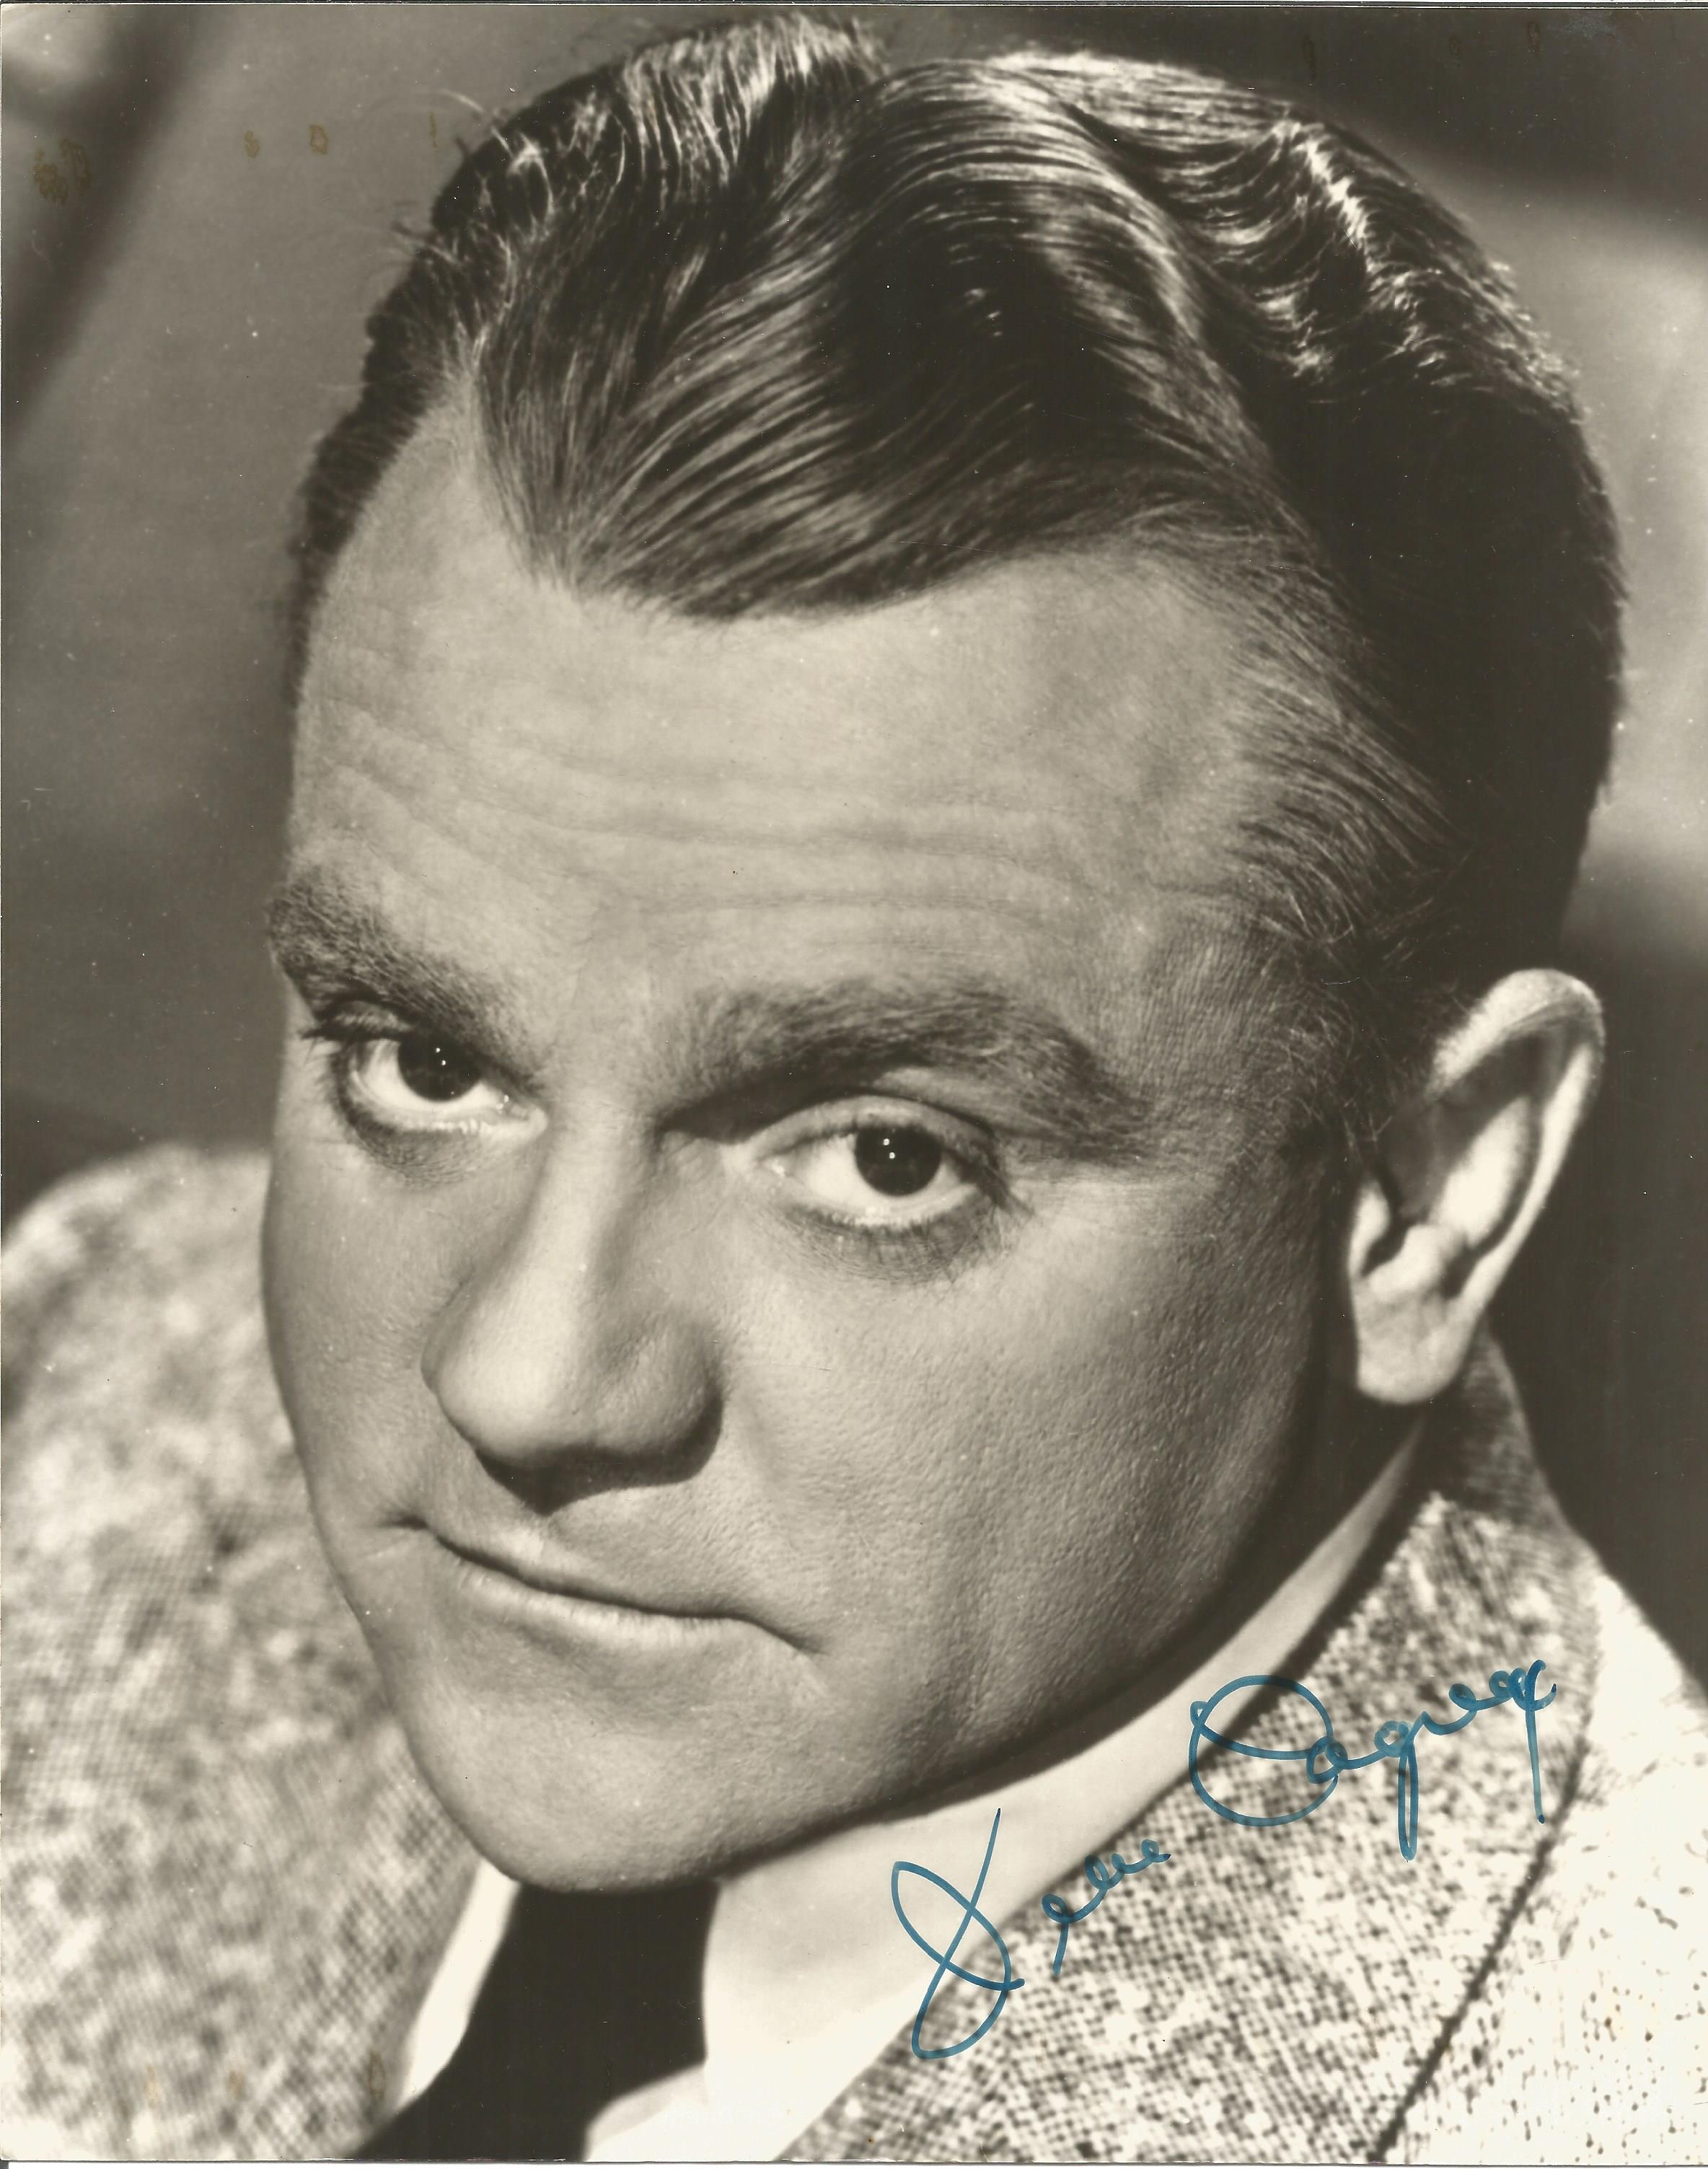 James Cagney signed 10x8 black and white photo. James Francis Cagney Jr. (] July 17, 1899 - March